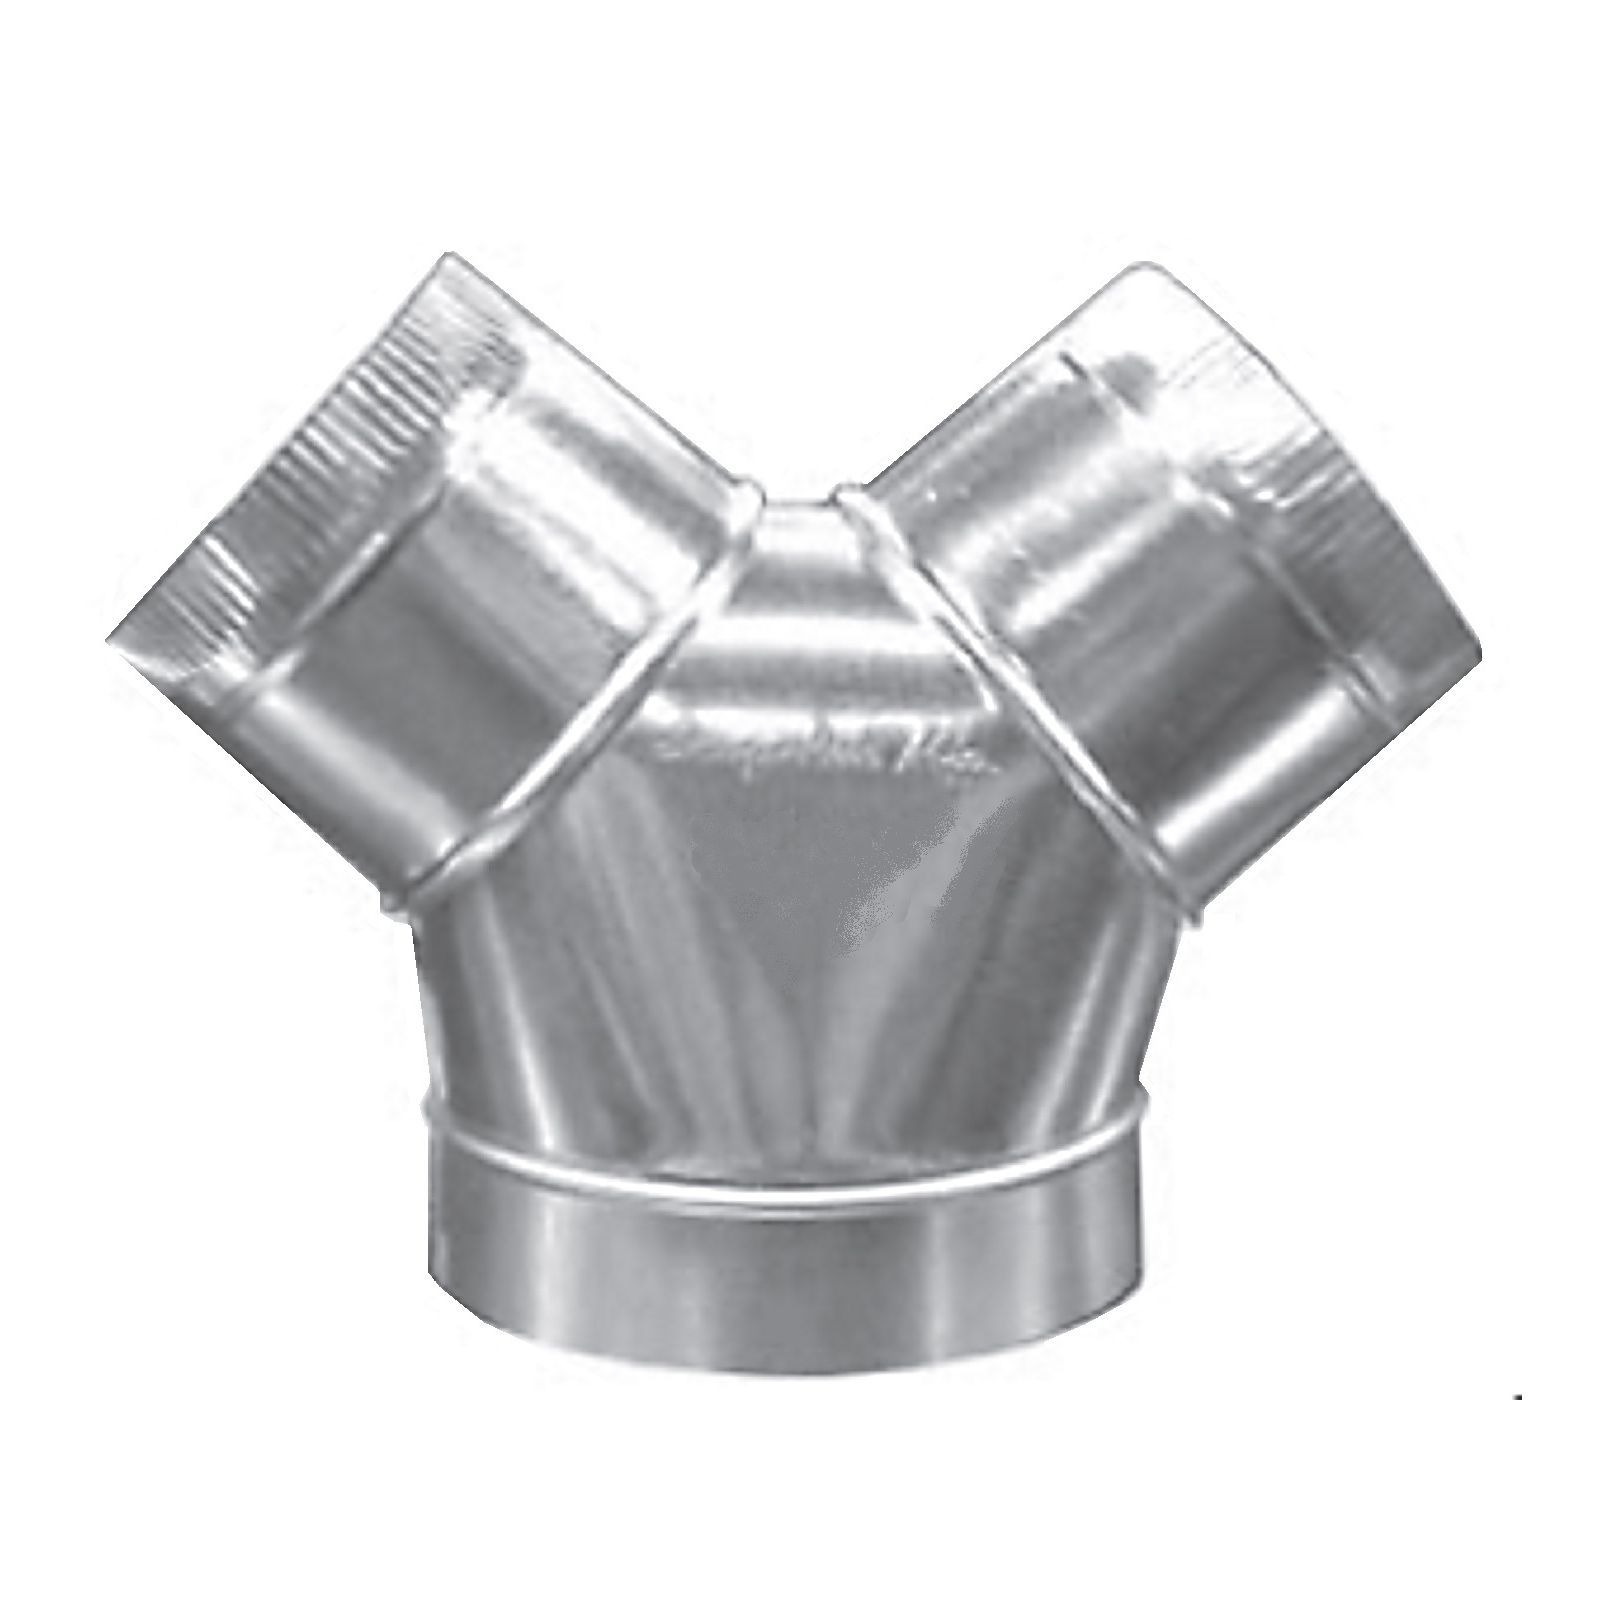 "Snap-Rite 09X7X7-307ECC - BullNose Wye, With 4"" Extension Collar, Crimp 2 Small Ends, 09"" x 07"" x 07"""